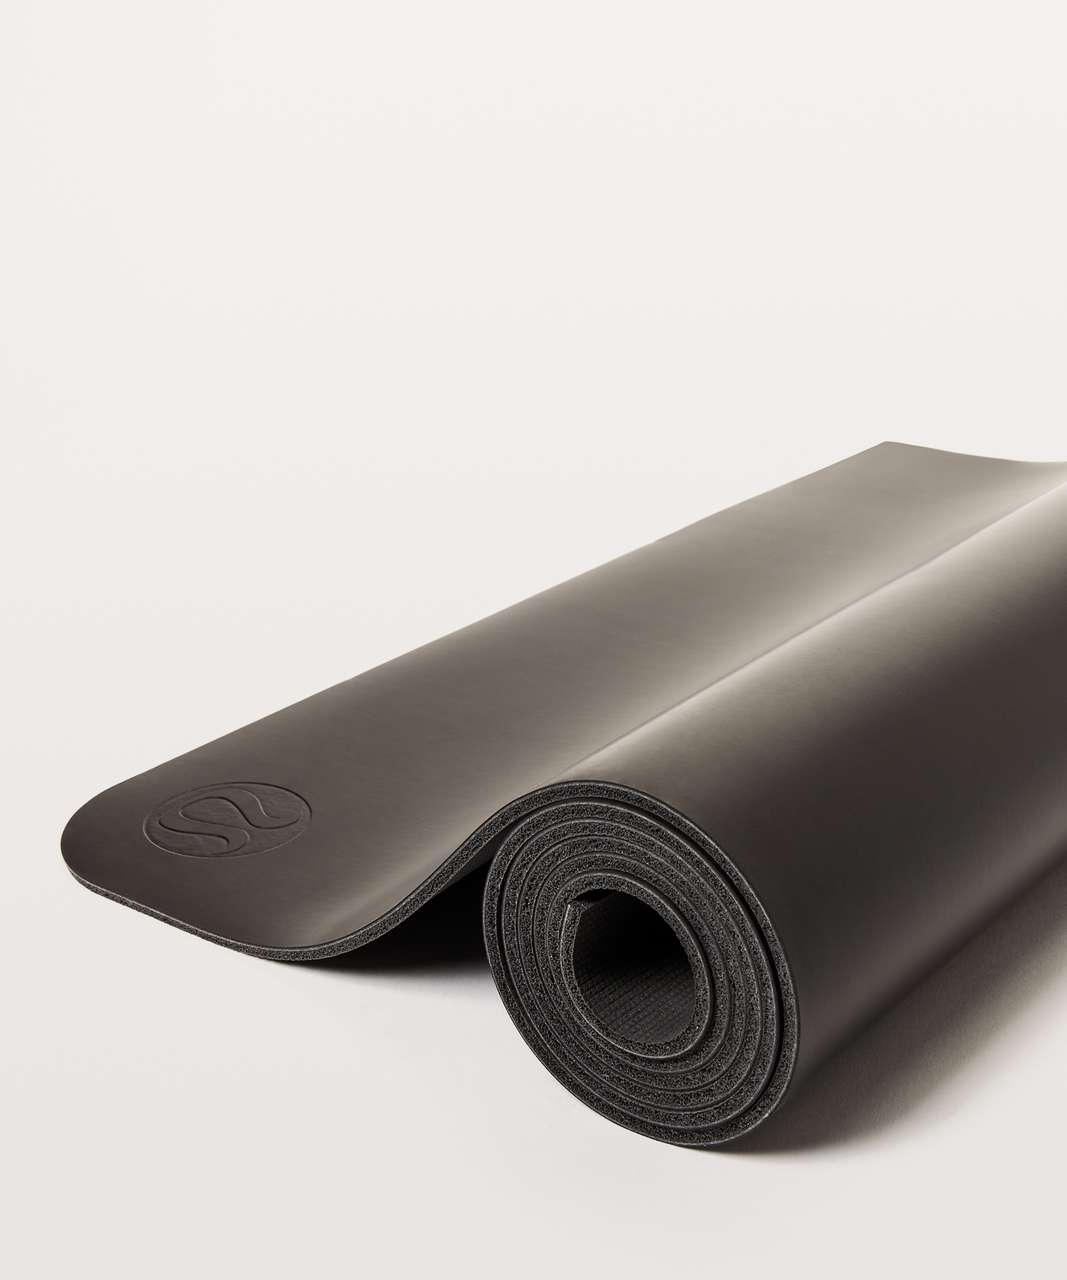 dca3faab03 Lululemon The Reversible Mat 5mm - Black - lulu fanatics